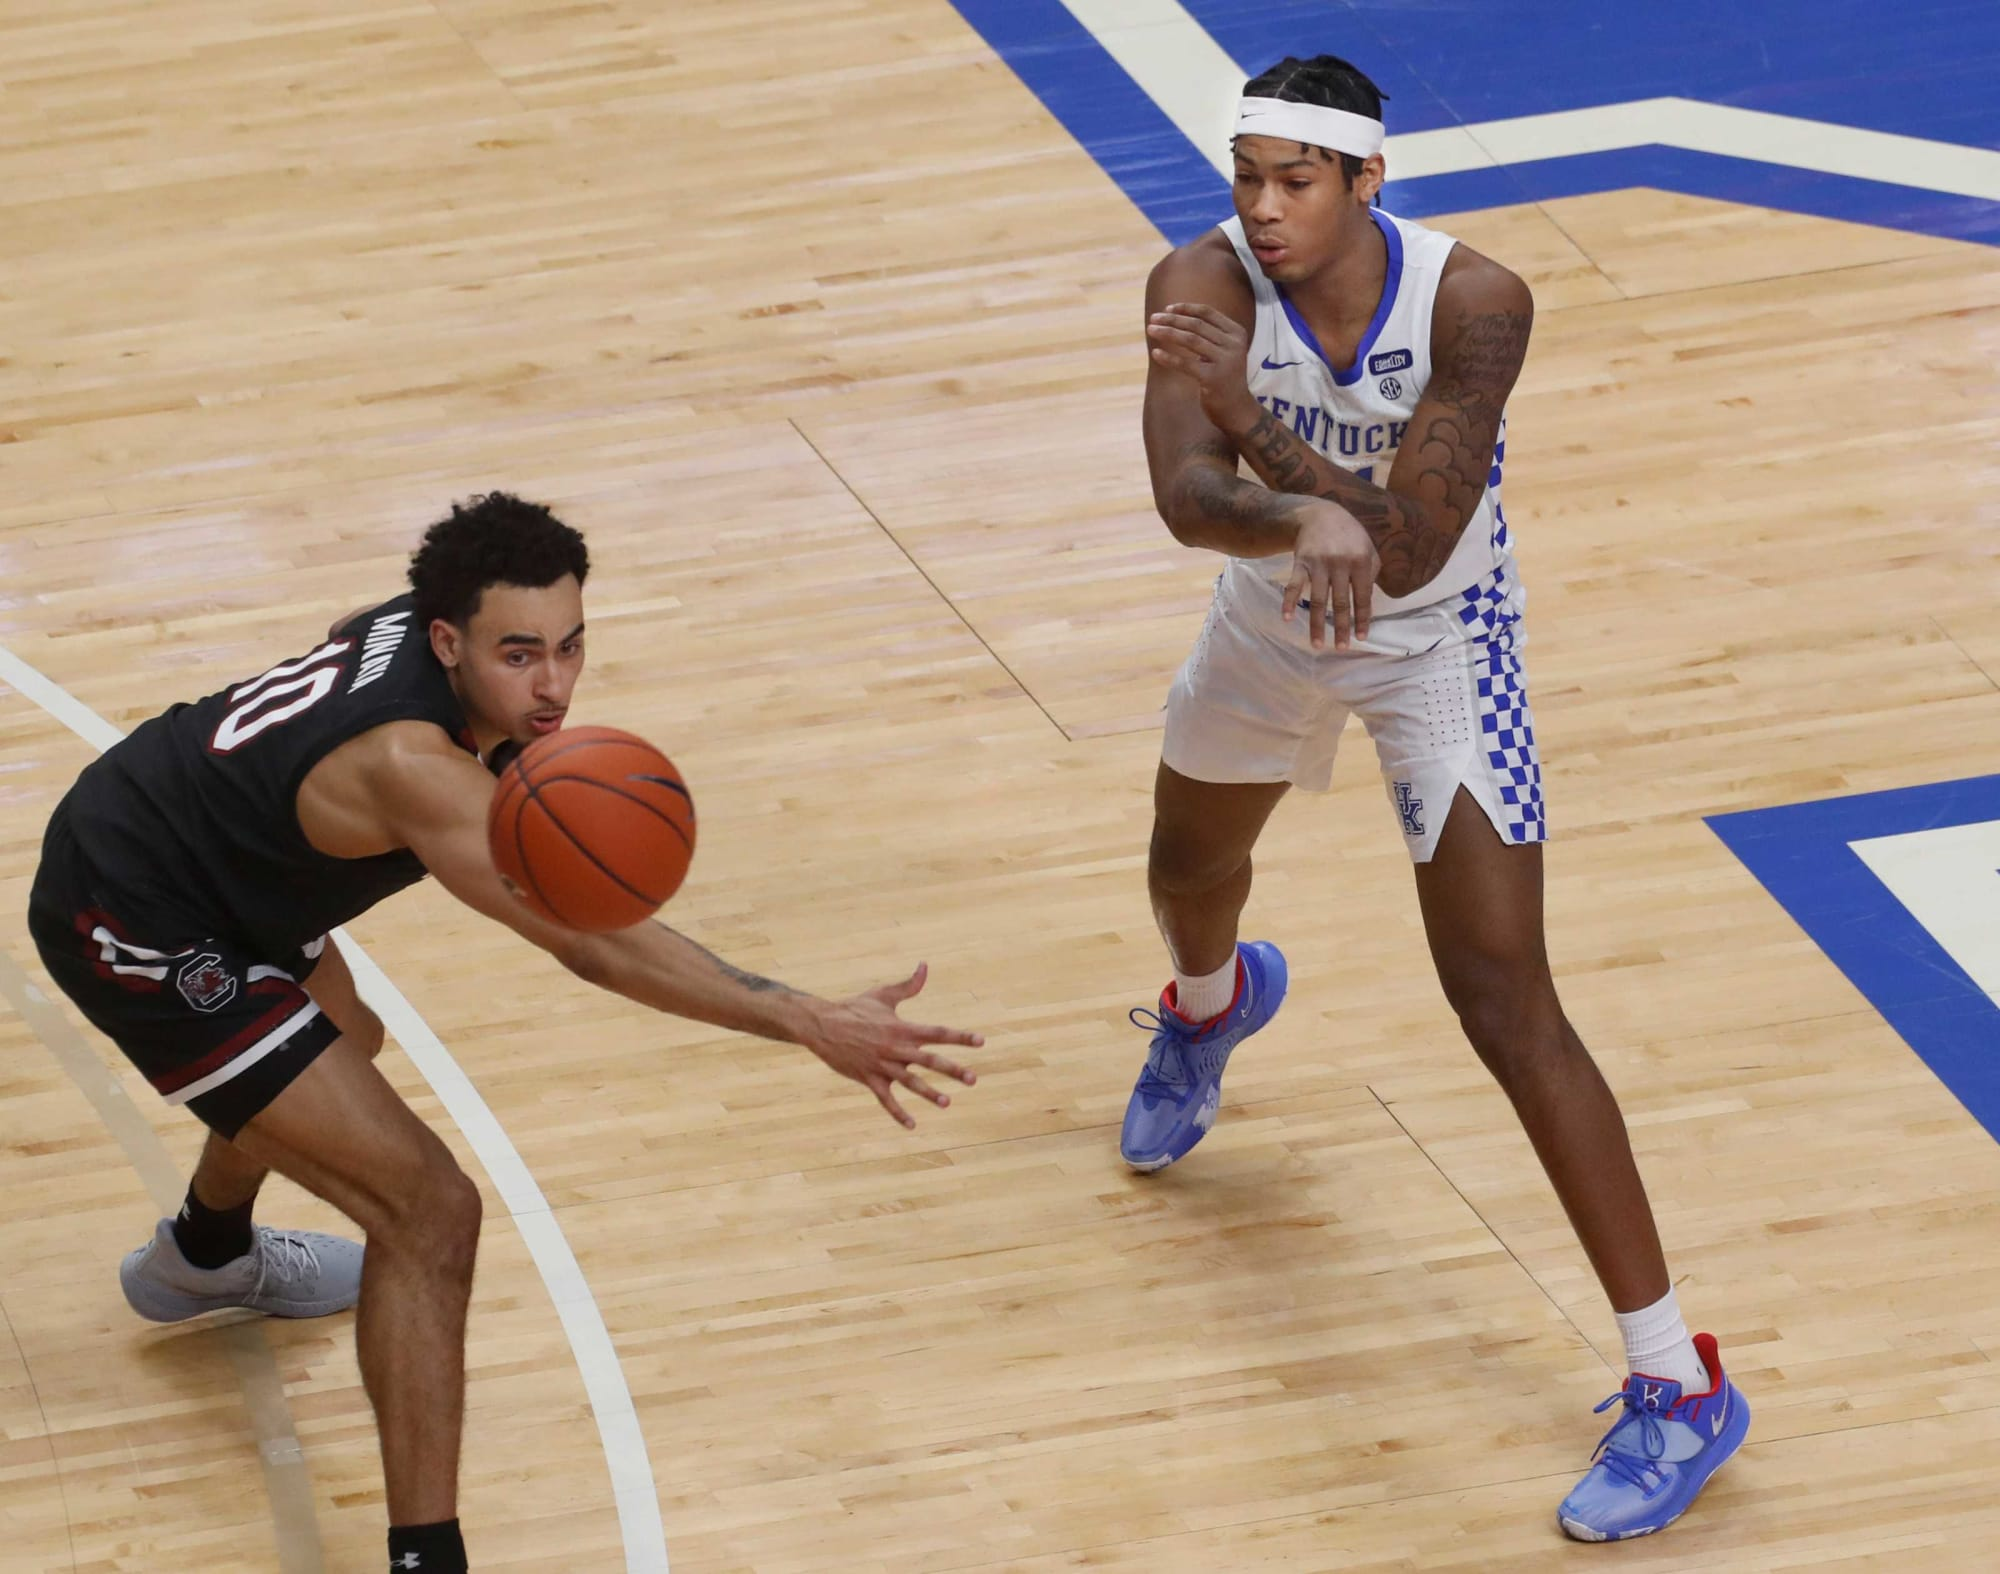 UNC Basketball: Could UNC benefit from UK transfer Cam'Ron Fletcher? - Keeping It Heel